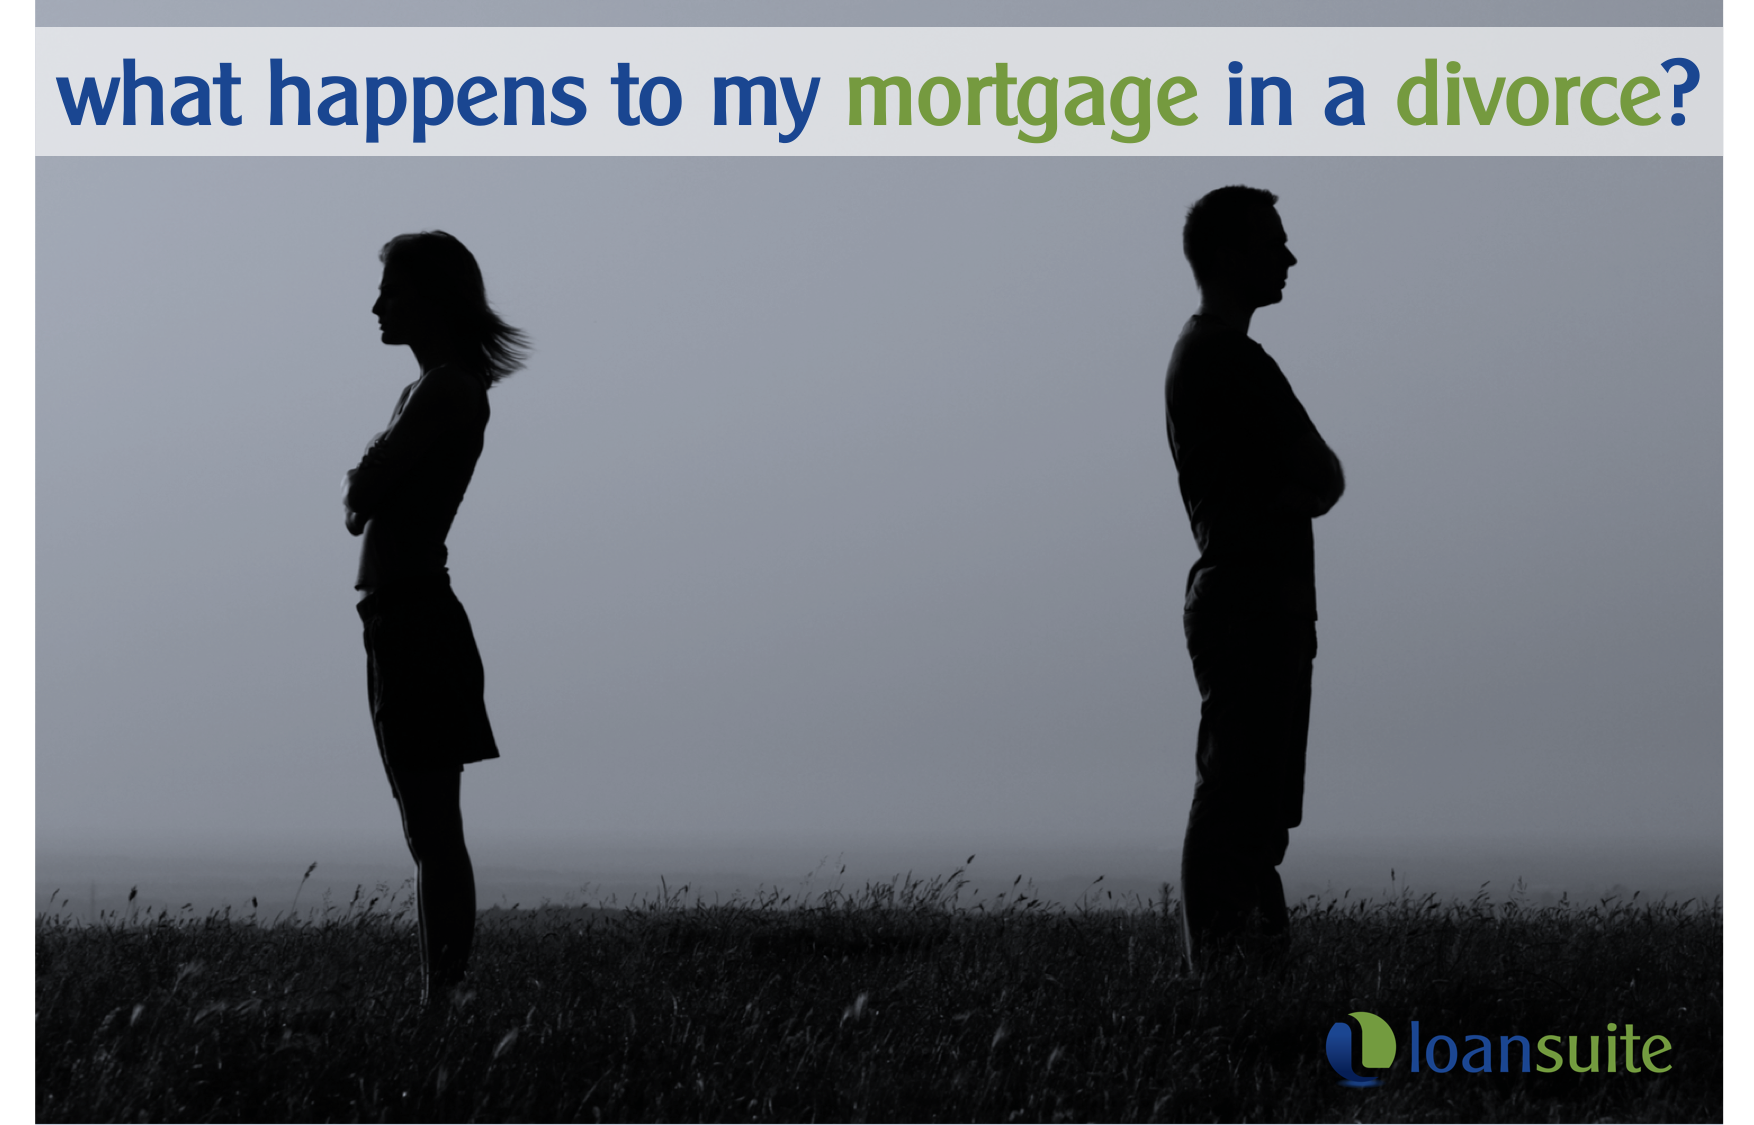 What Happens to your Mortgage During Divorce - Loansuite - Mortgage Brokers